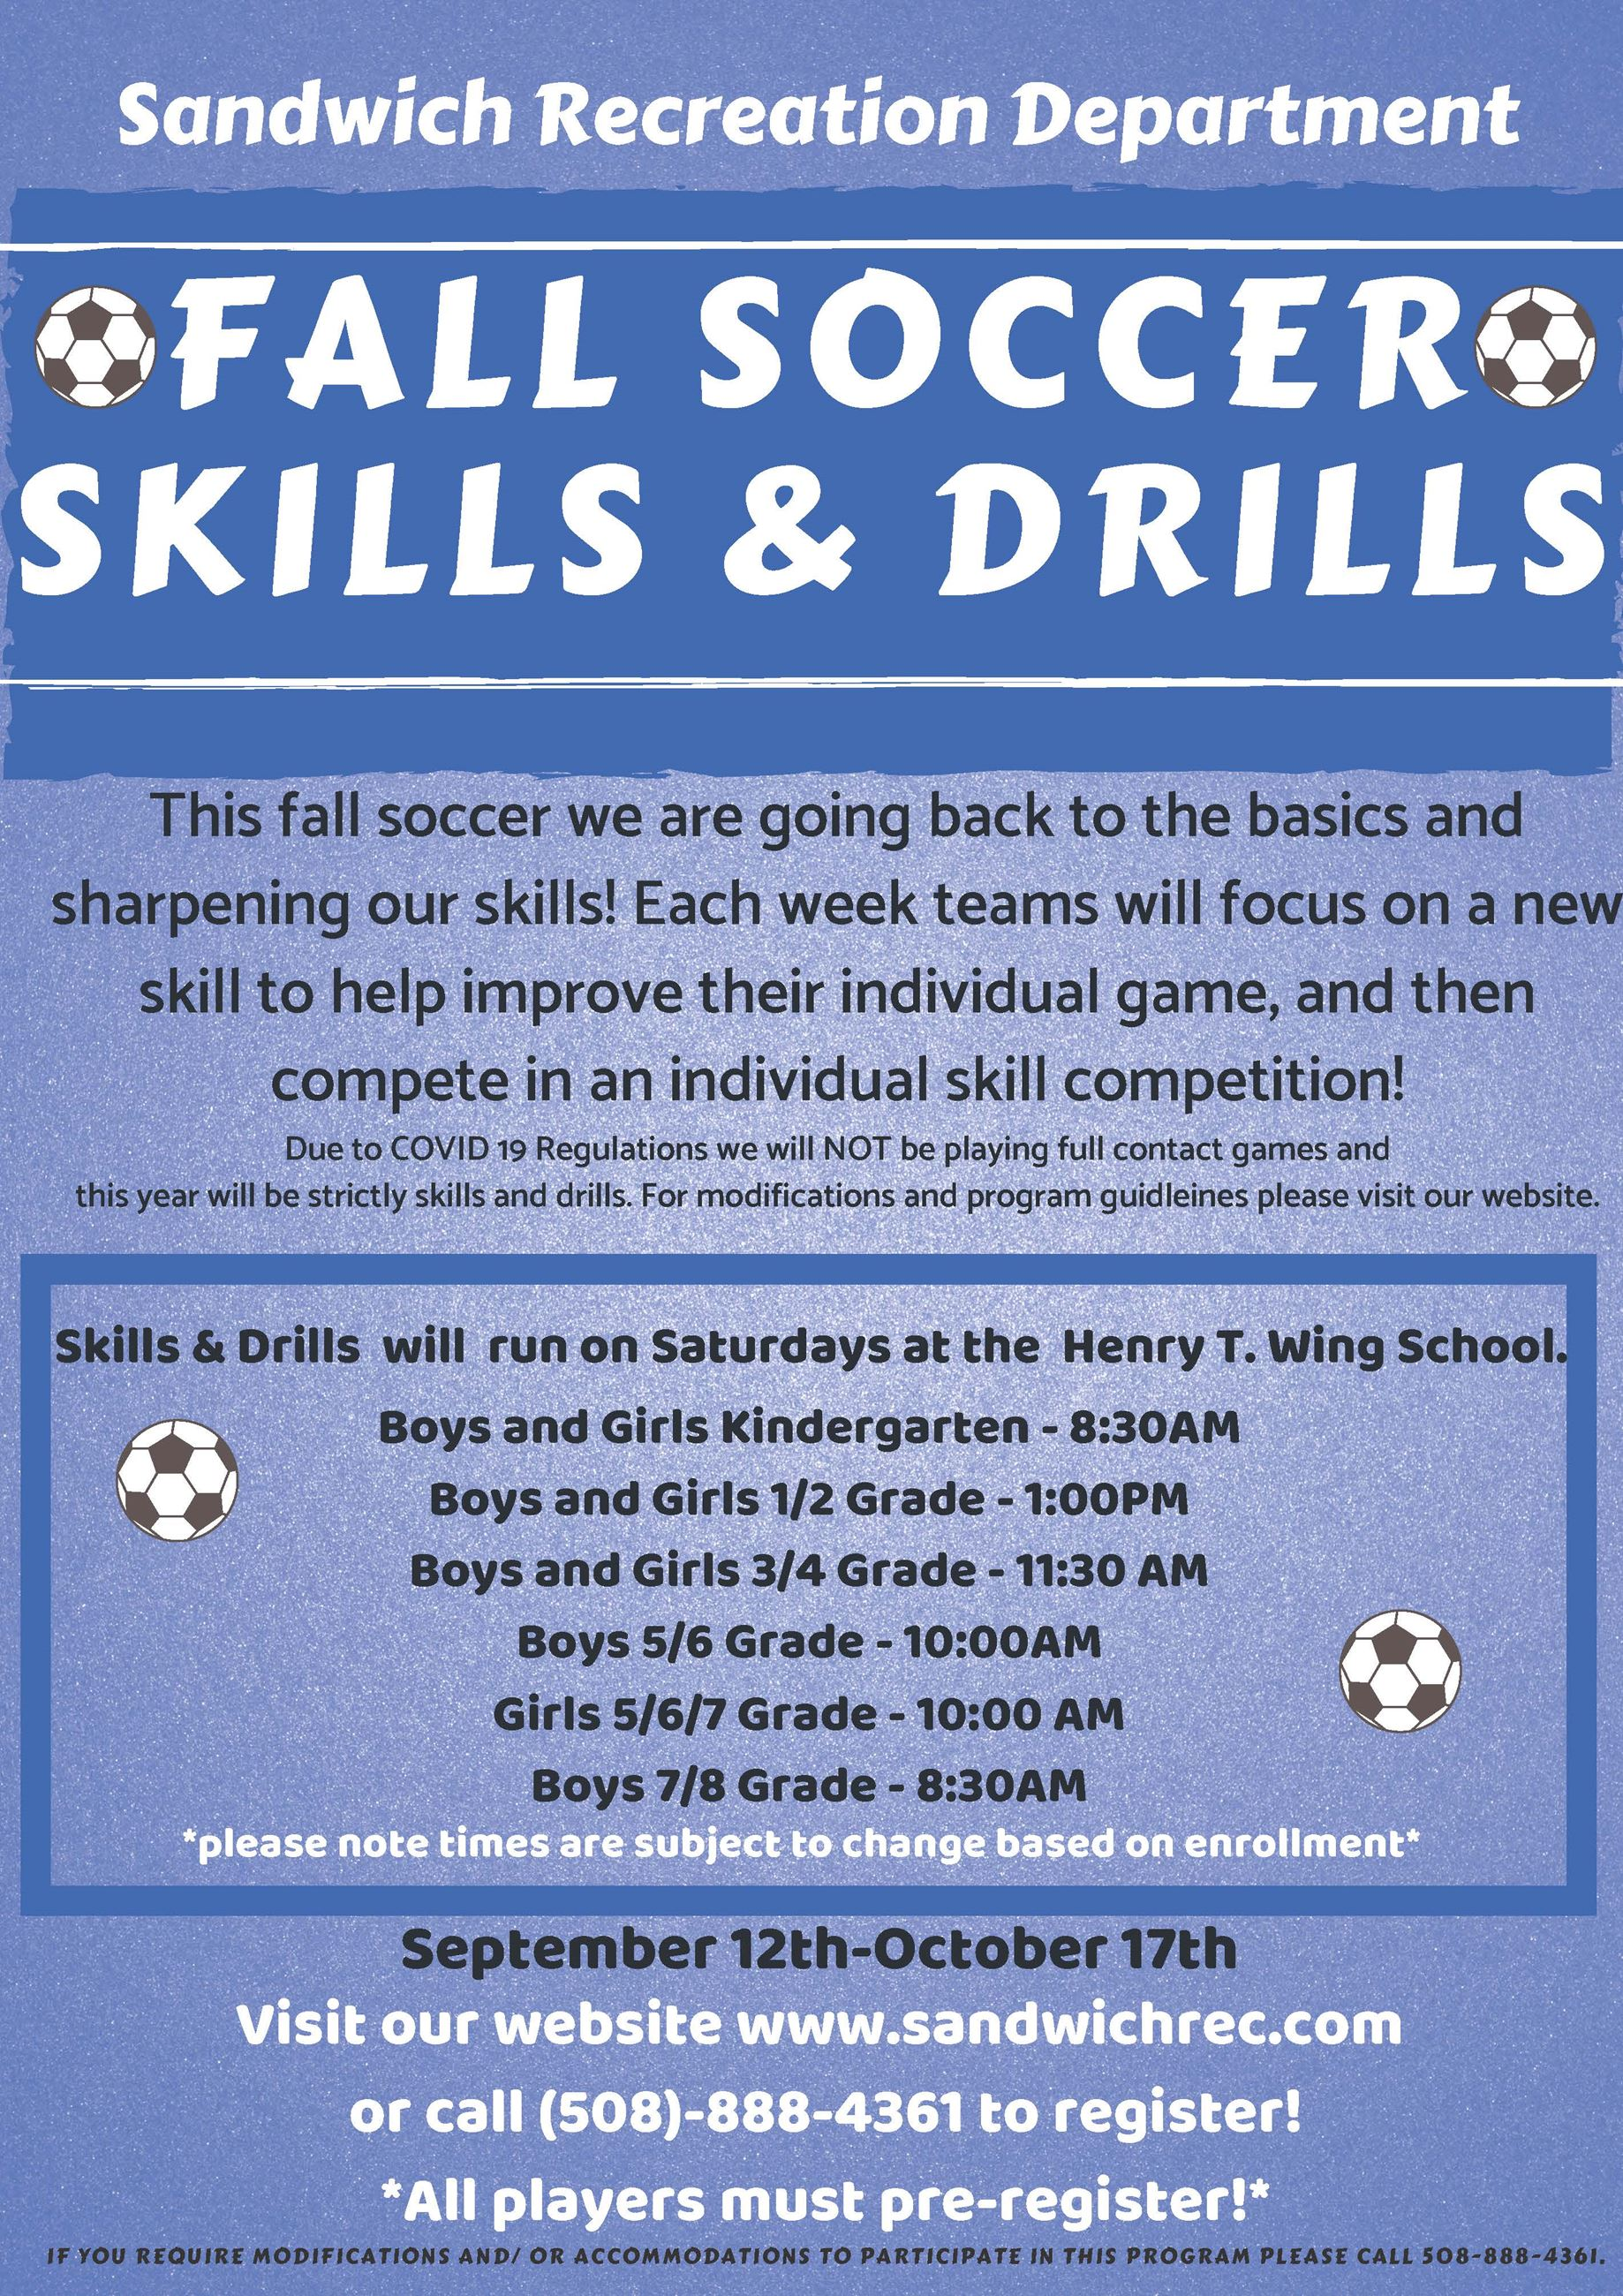 Fall Soccer 2020 Flyer